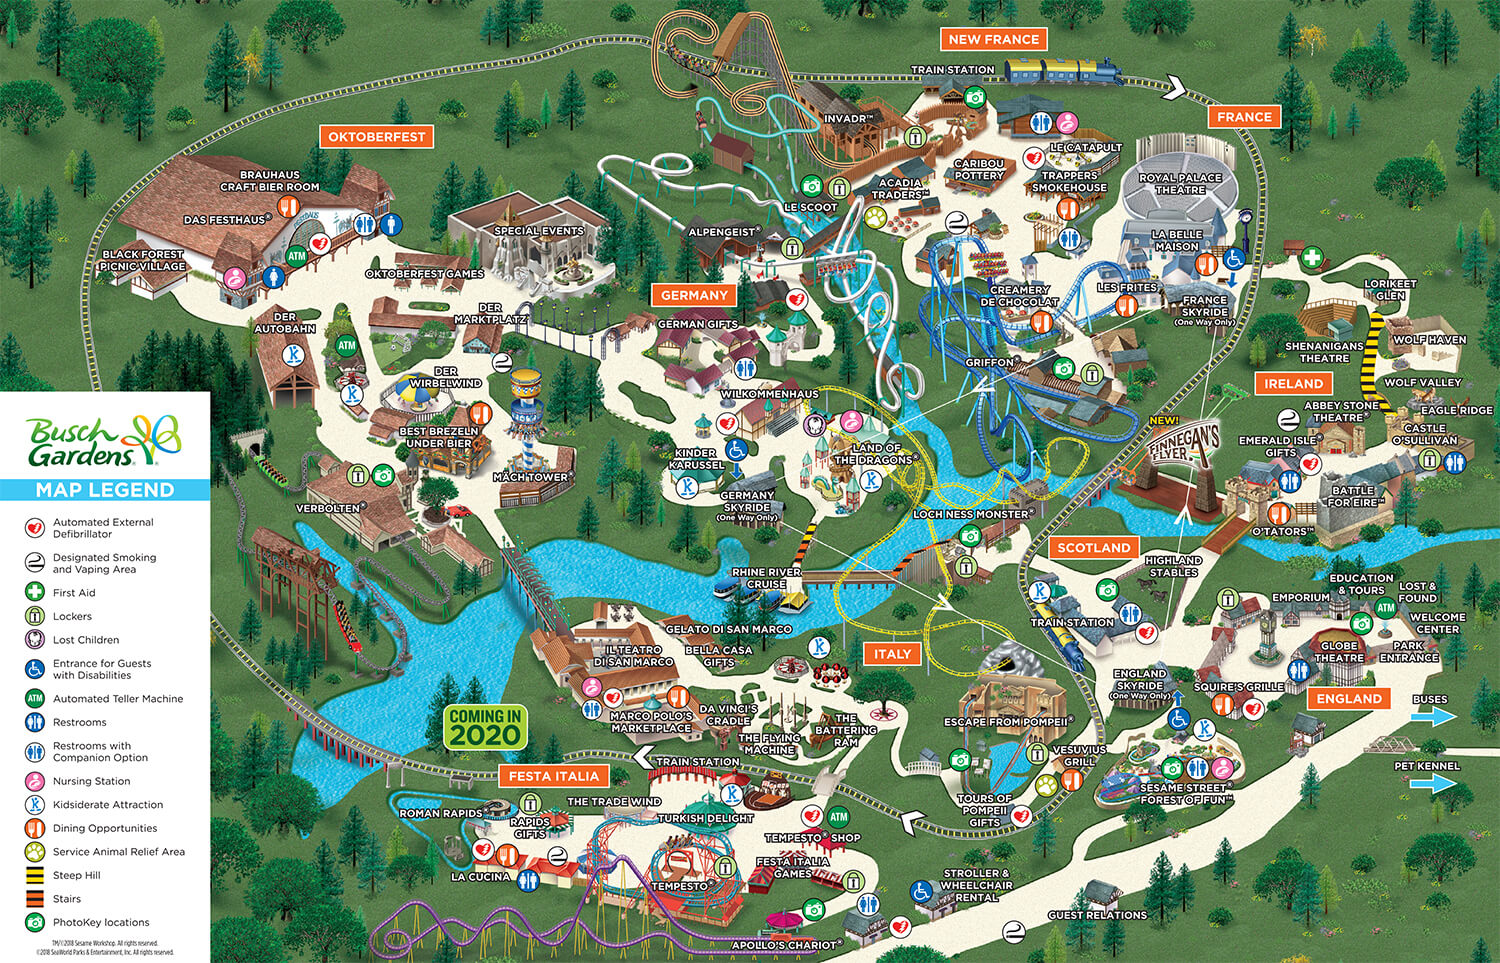 Buy Membership Plans (Formerly Annual Pass) | Busch Gardens